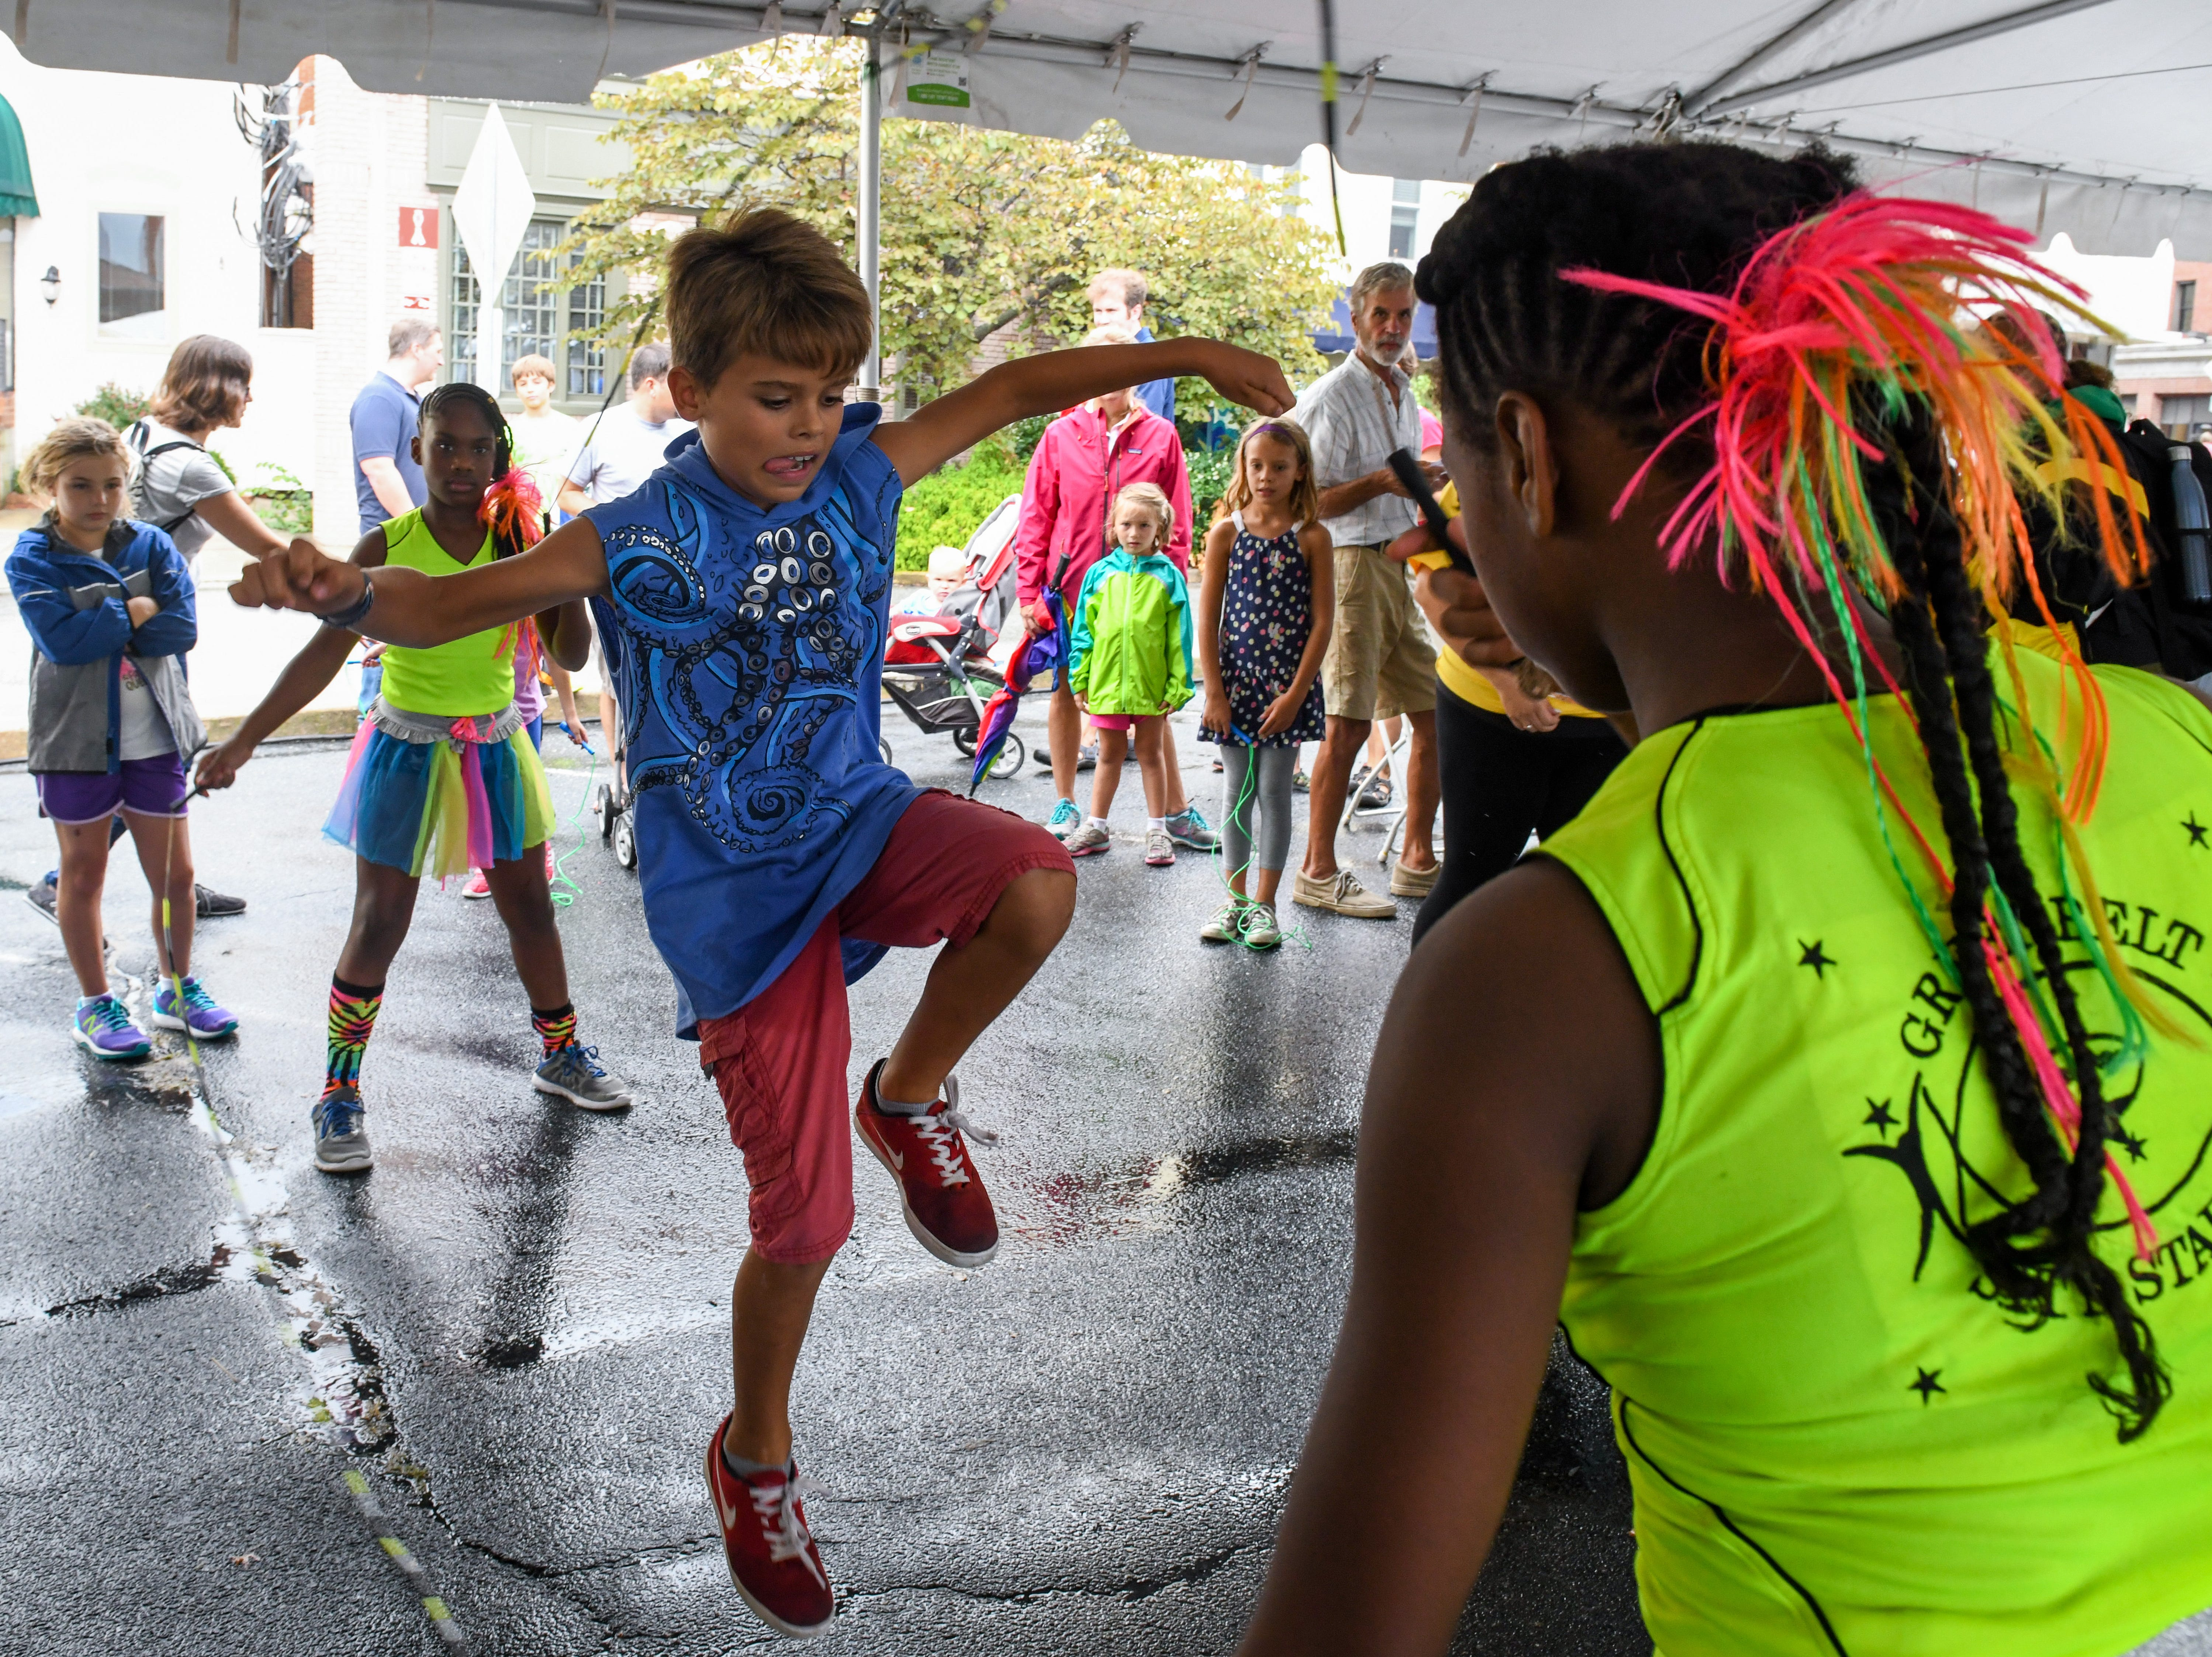 10-year-old Wyatt Tolker jumps rope with the Greenbelt S.I.T.Y Stars precision jumprope team at the National Folk Festival in Salisbury on Saturday, Sept. 8.